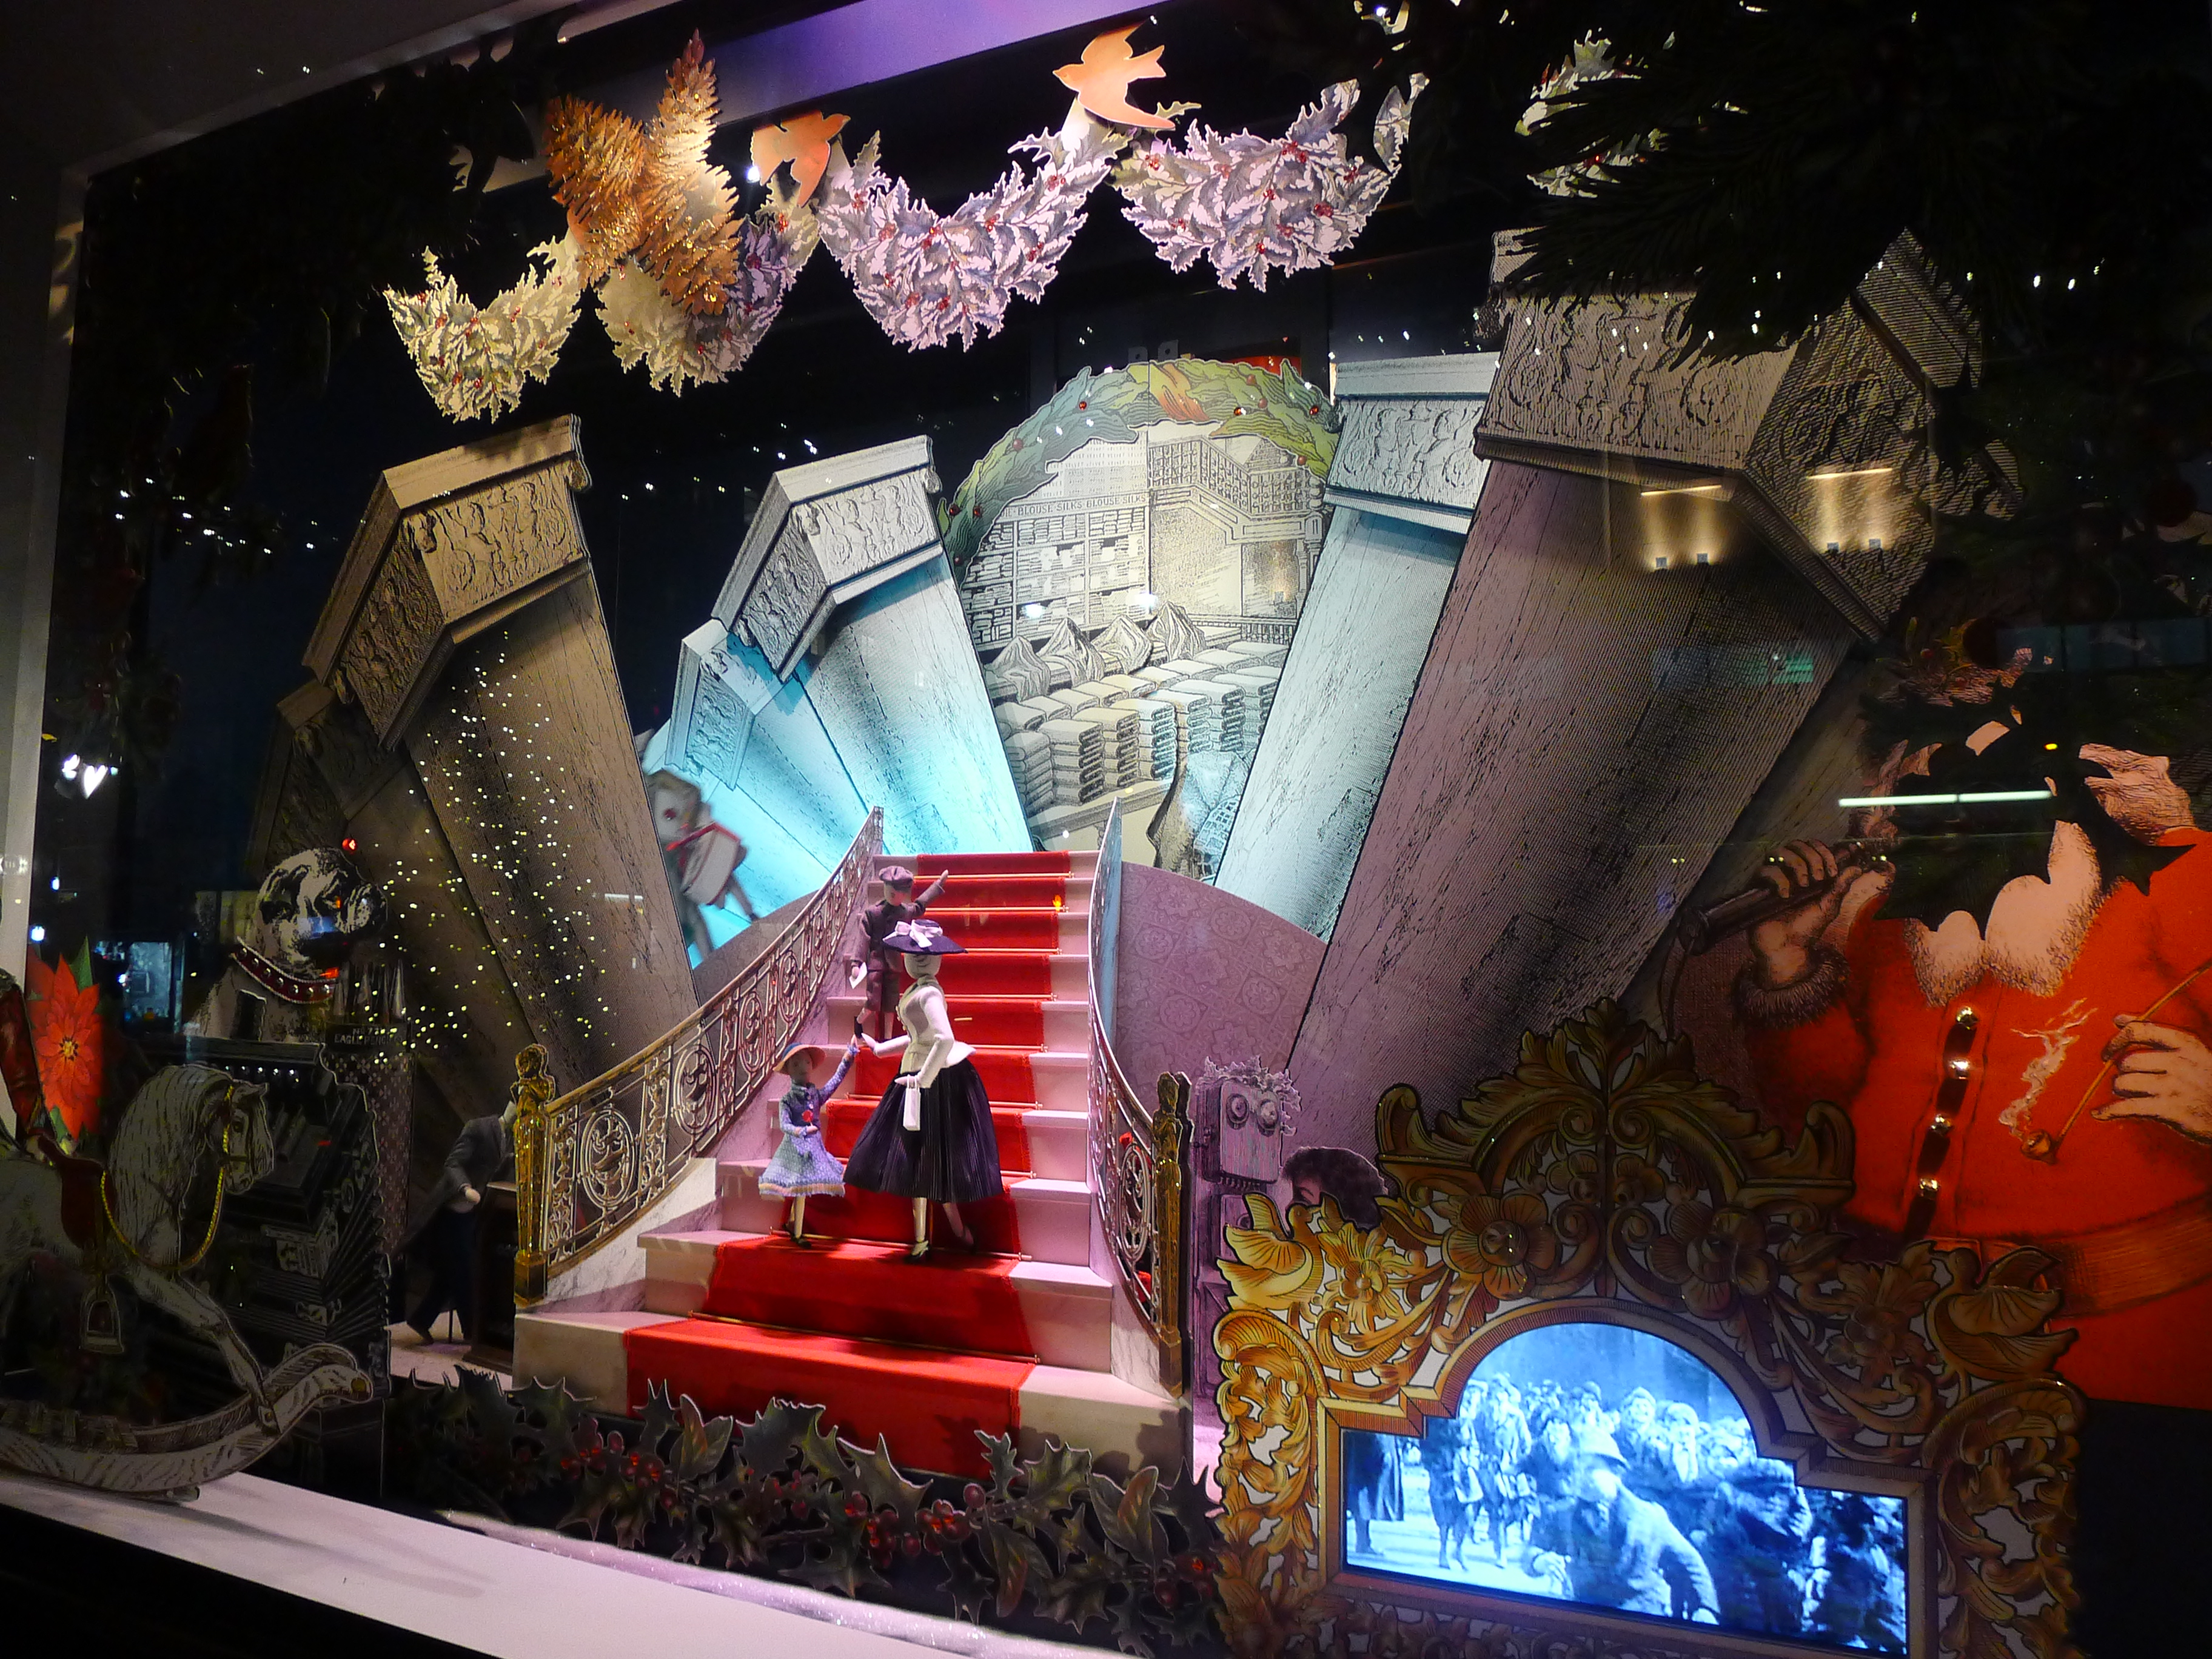 Christmas Window Displays.Visited The Christmas Window Displays Today S The Day I